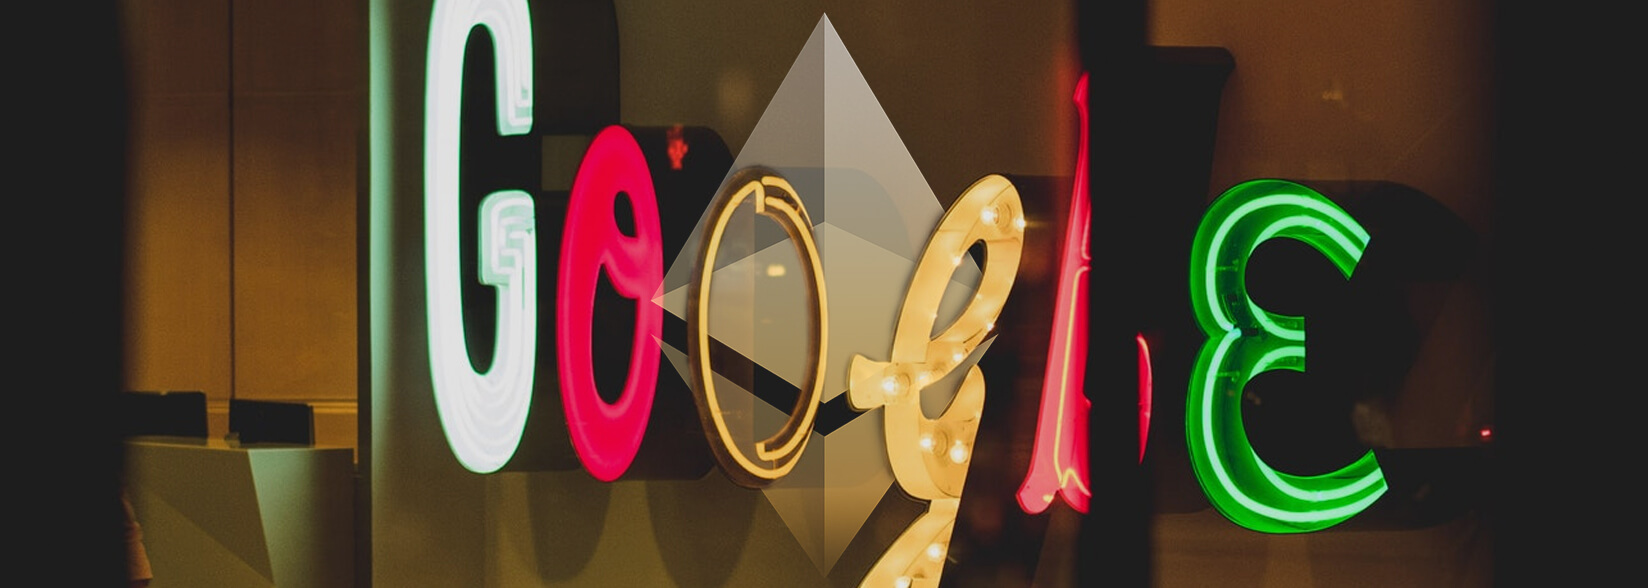 Google's Blockchain Tools will be the Rise of Ethereum and Bitcoin's Price